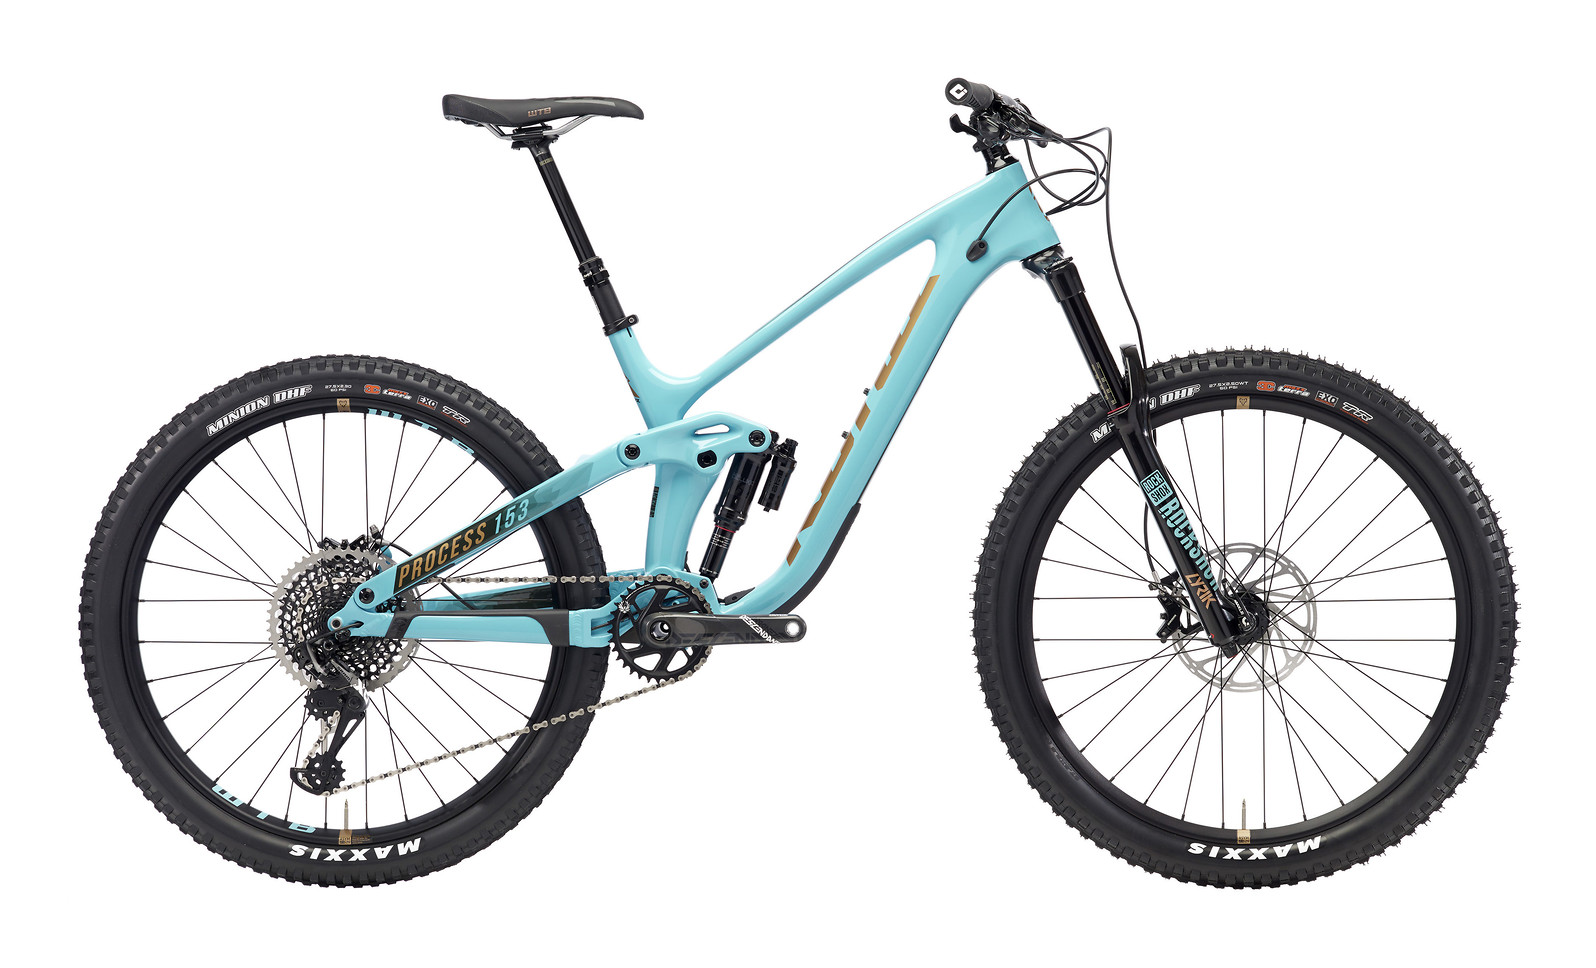 2018 Kona Process 153 CR/DL 27.5  2018 Kona Process 153 CR/DL 27.5